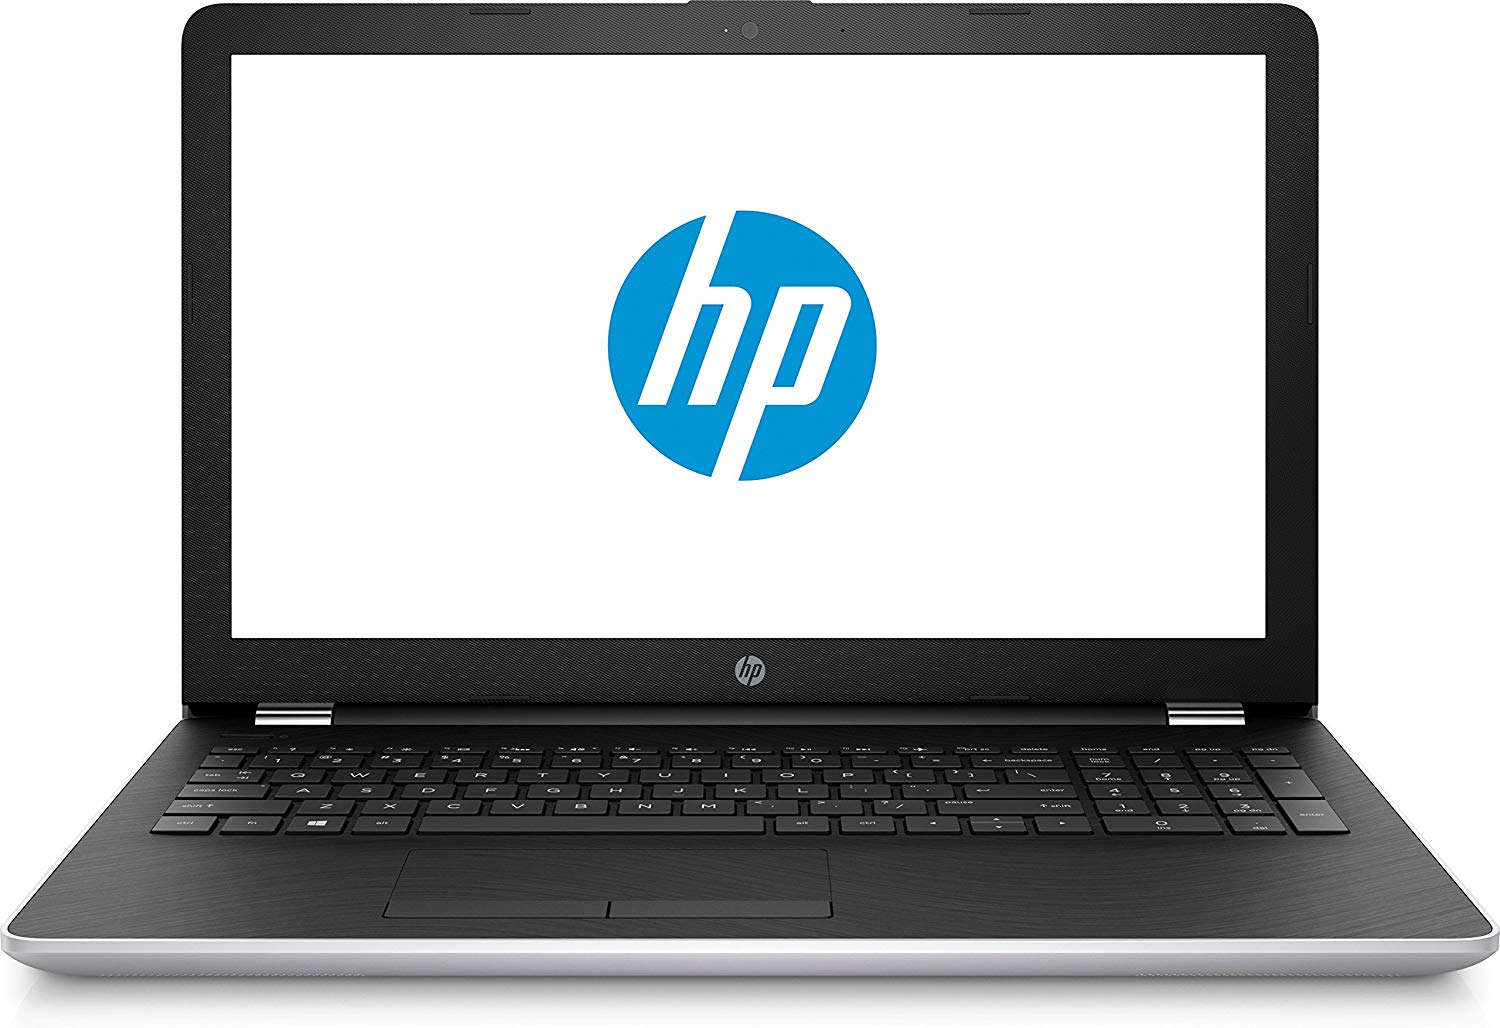 HP Laptop_black_friday